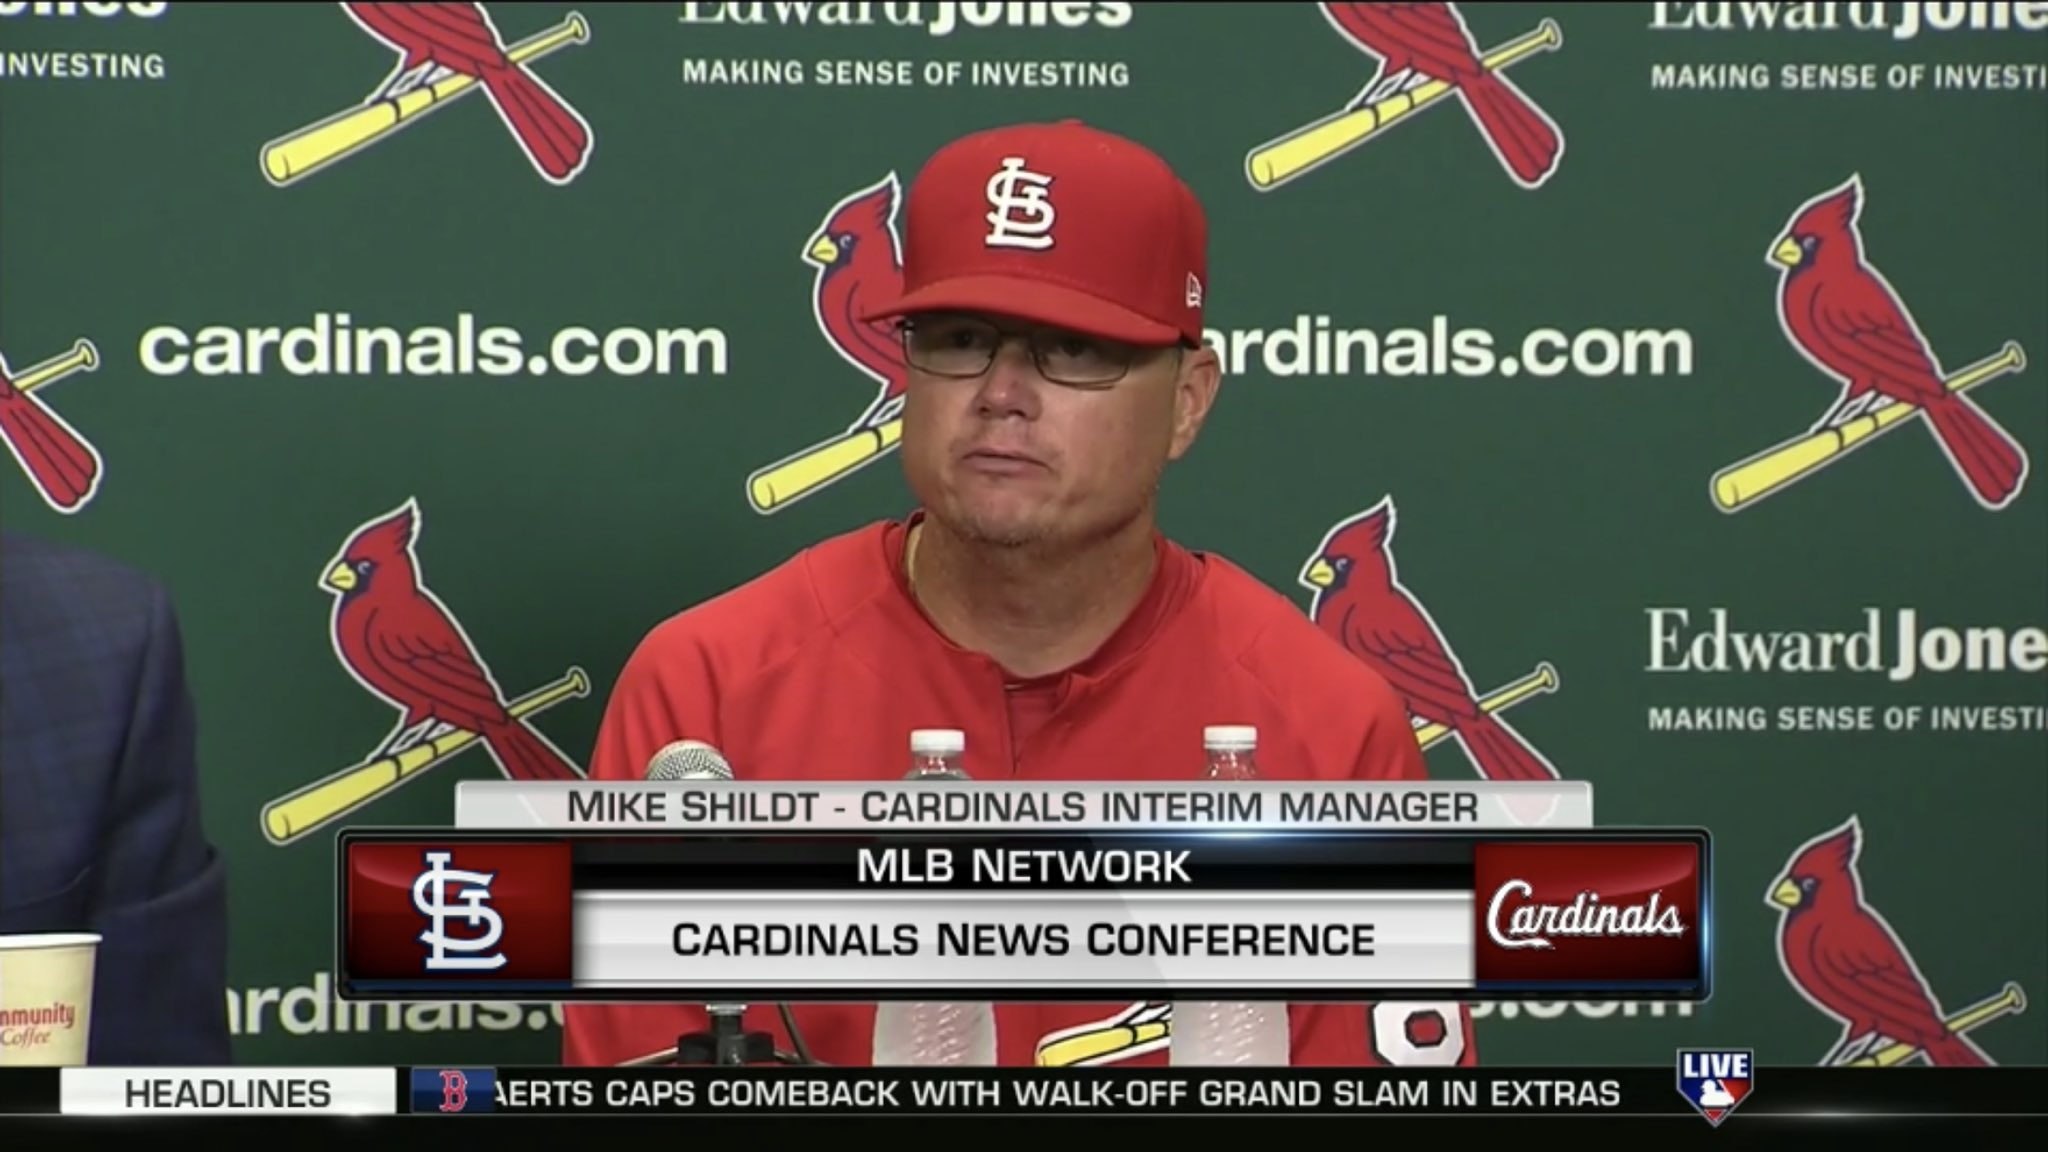 #LiveOnMLBN: Watch the @Cardinals press conference regarding their managerial change right now. https://t.co/jzzM9bQXKj